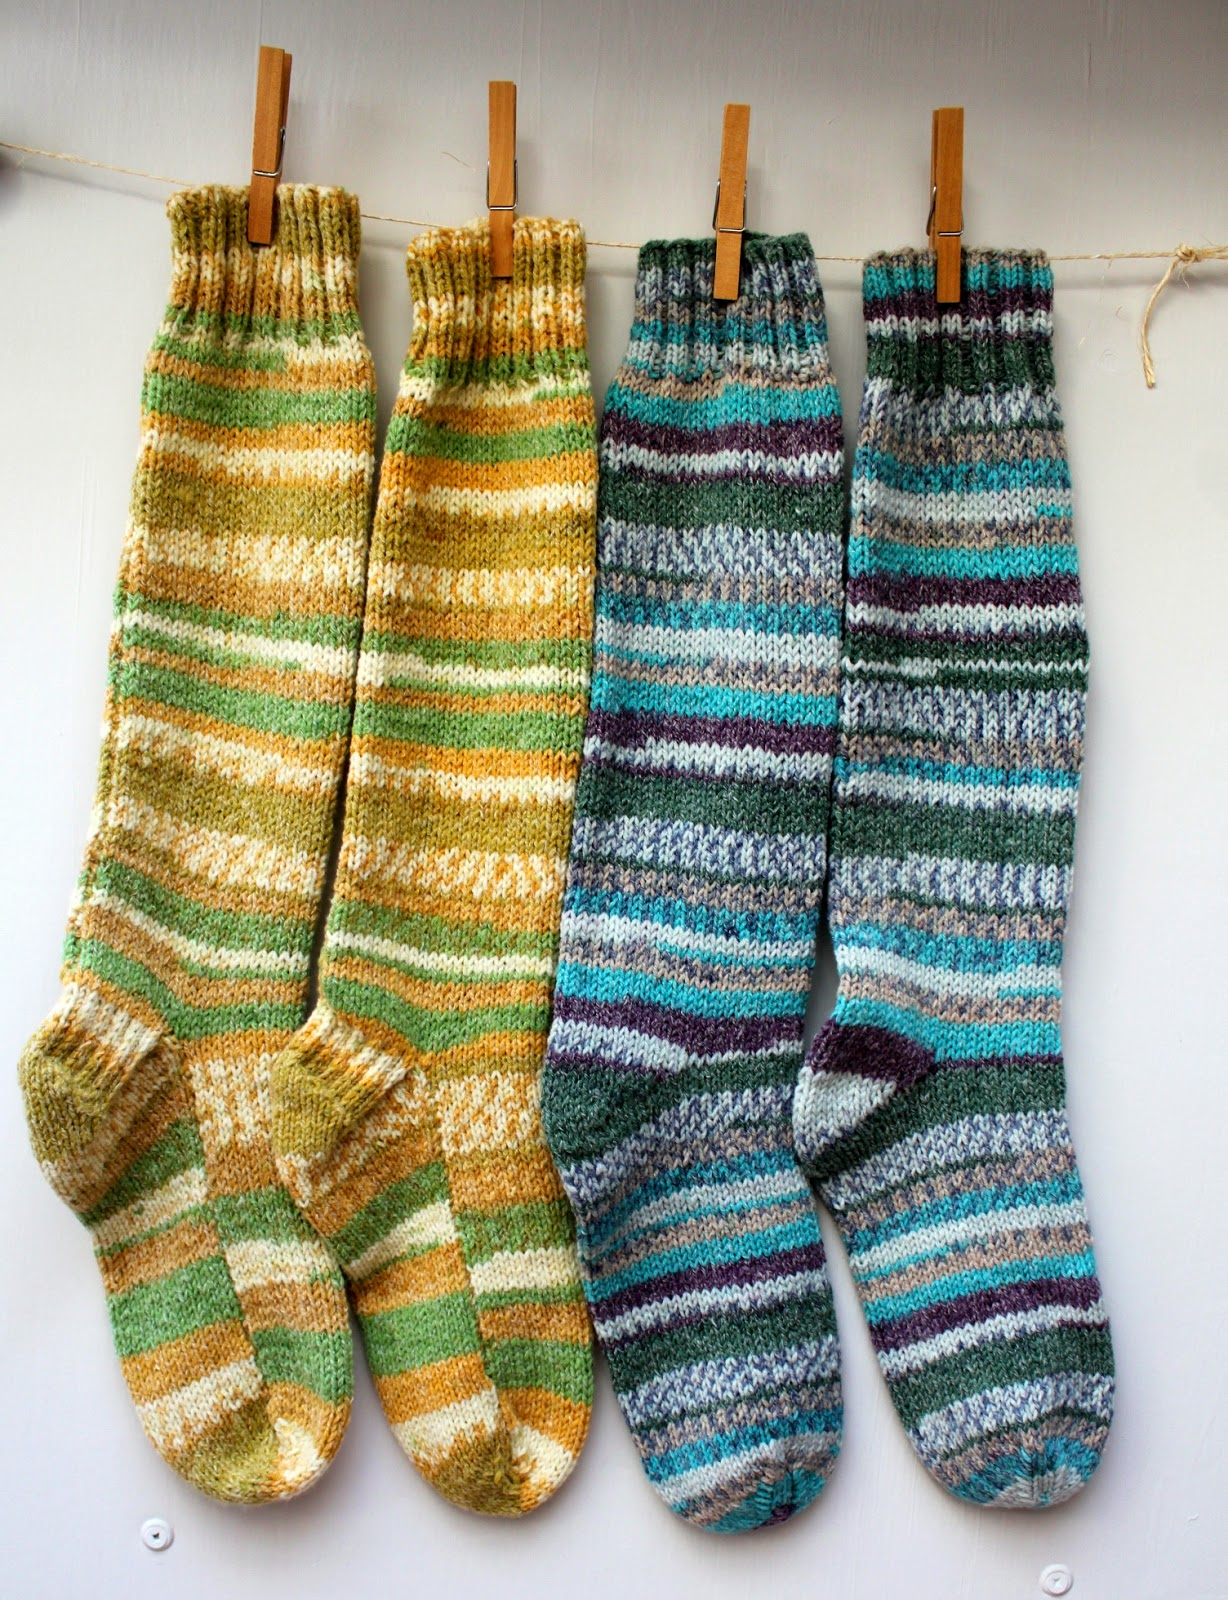 Knitting Pattern For Socks In The Round : Hand Knitted Things: Sirdar Crofter DK Socks on Straight Needles